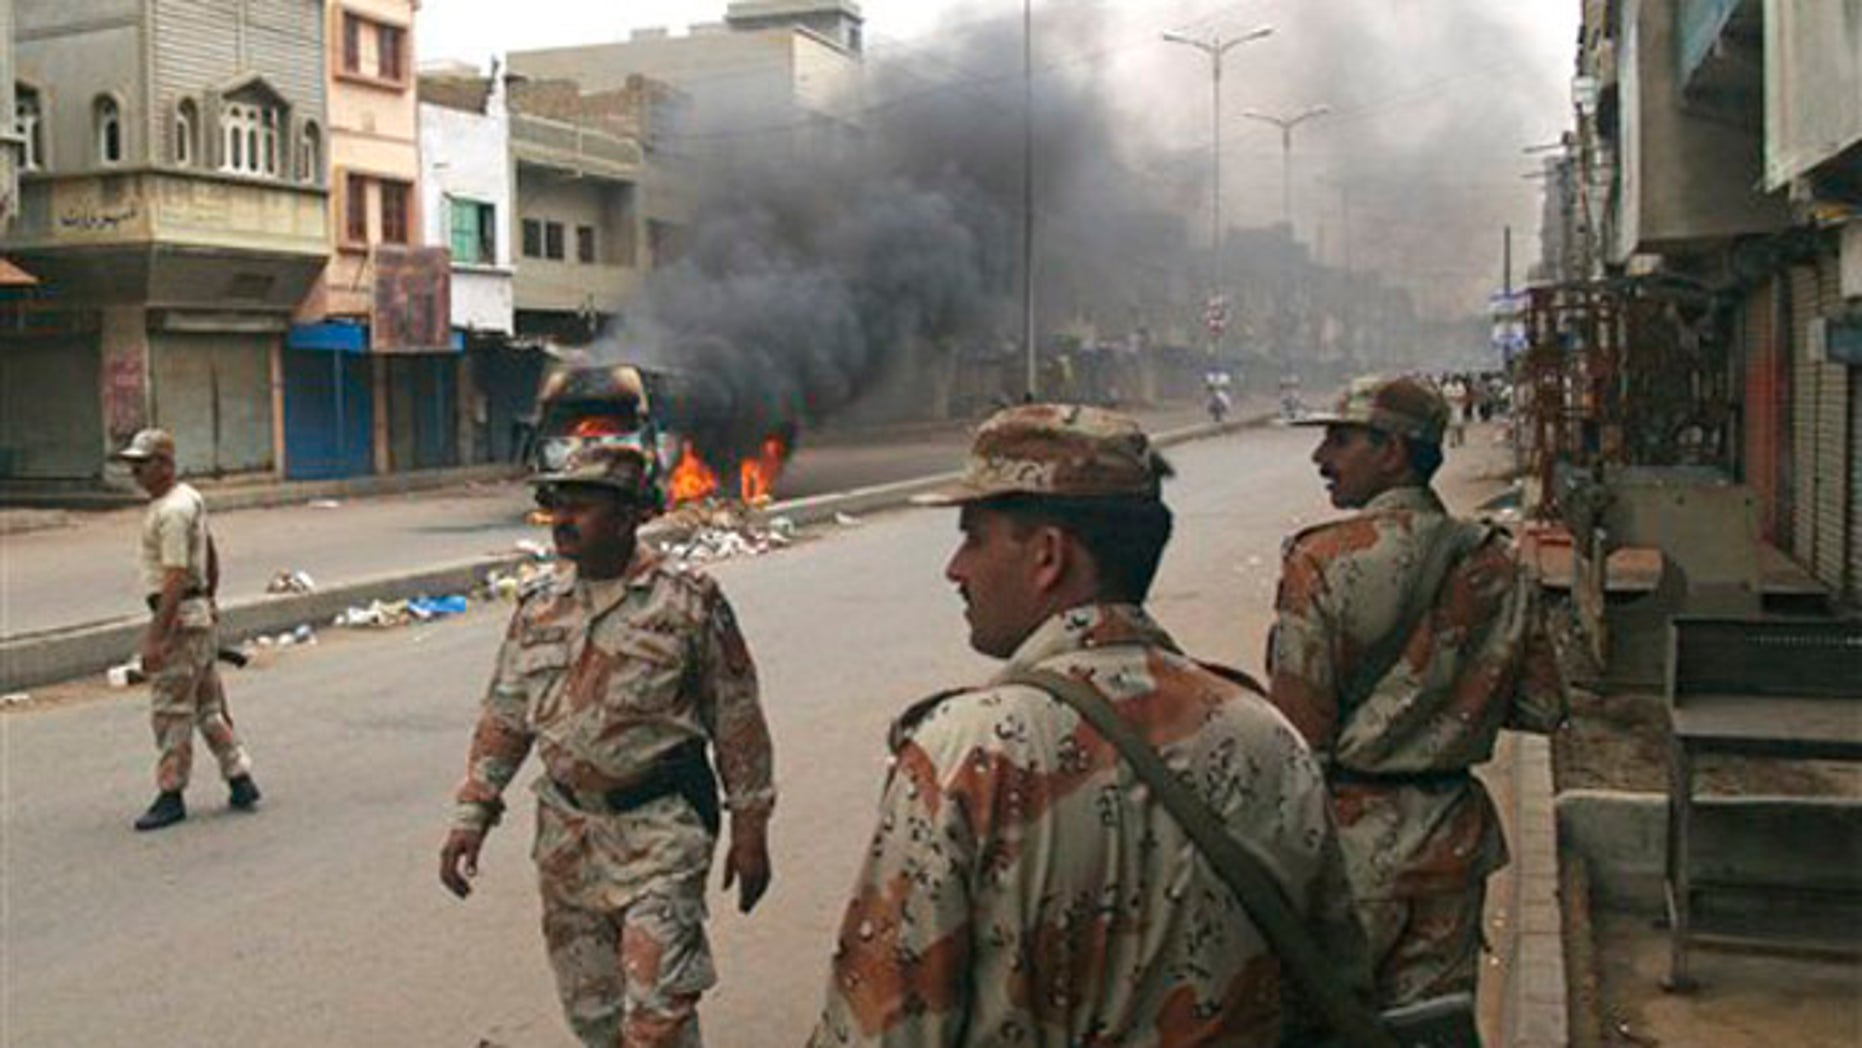 Pakistani para military troops gather near a vehicle set on fire by angry mob following the killing of a local leader of the Muttahida Quami Movement in Pakistan on Tuesday, Aug. 3, 2010. Gunmen killed dozens of people in Pakistan's largest city after the assassination of a lawmaker.